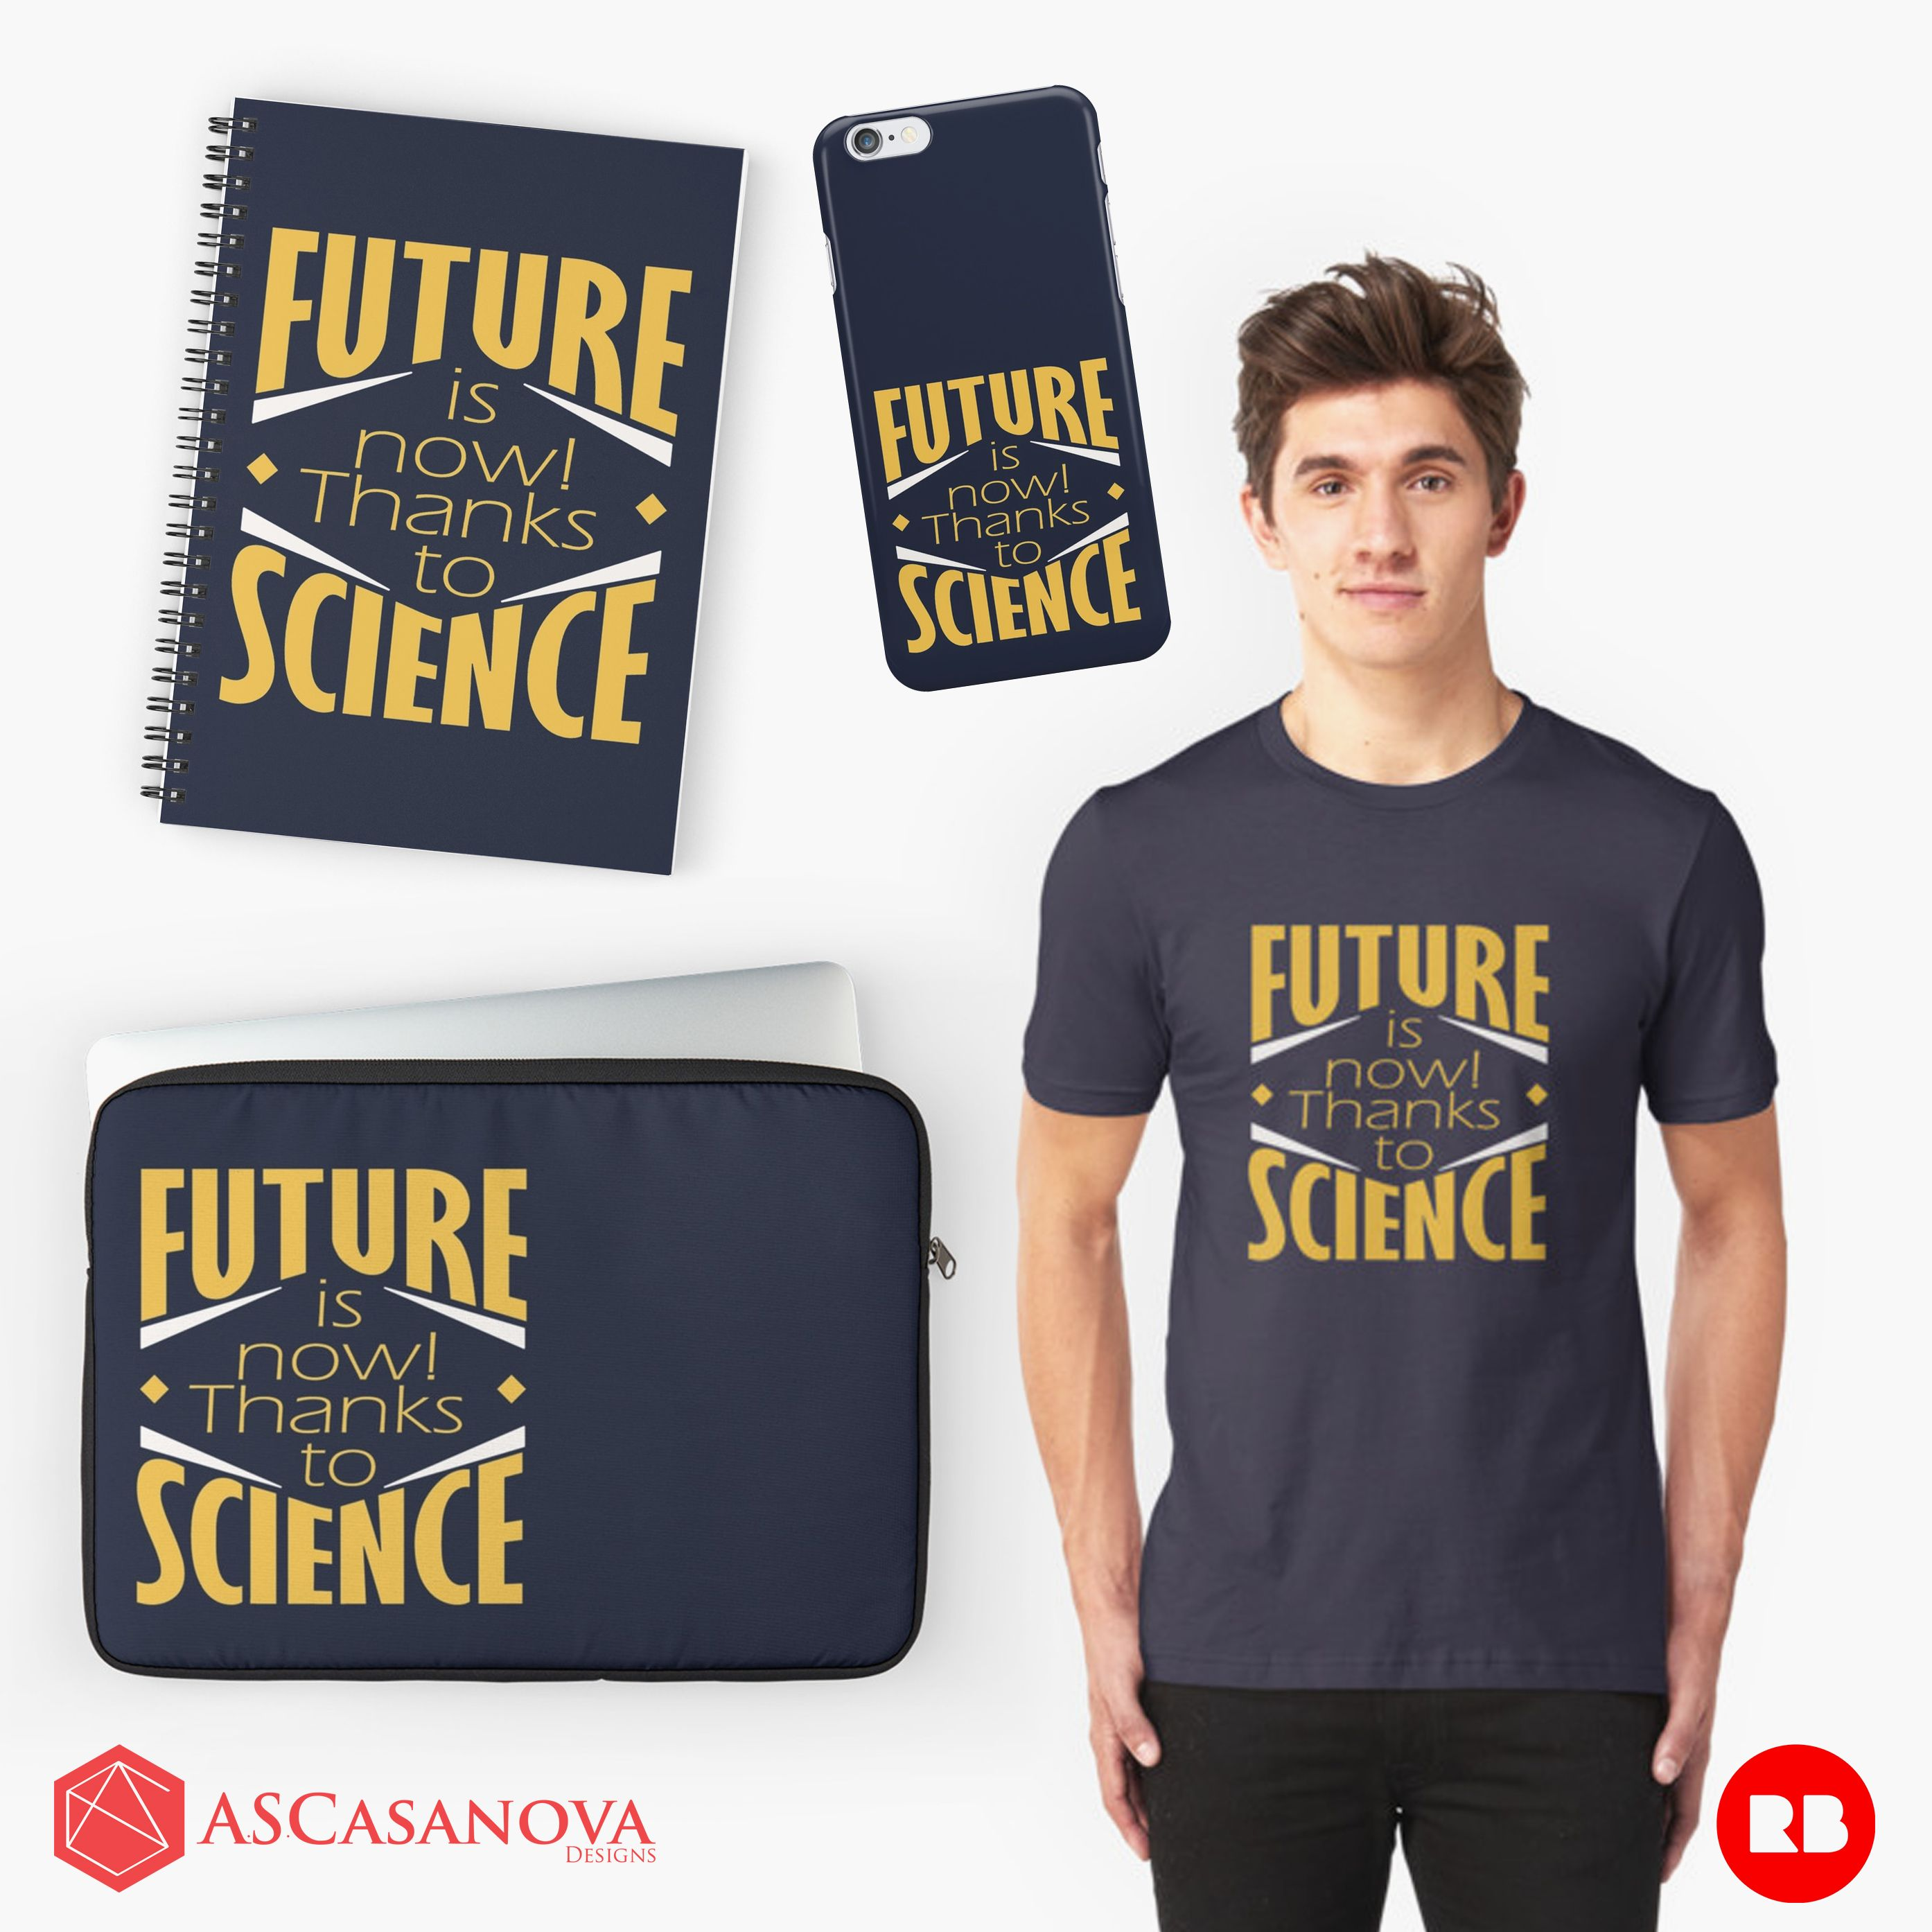 Future is now! thanks to Science.  design by ASCasanova You can find this Pokemon xy inspired collection in Redbubble  http://www.redbubble.com/people/ascasanova/works/22920955-future-is-now?asc=u&ref=recent-owner